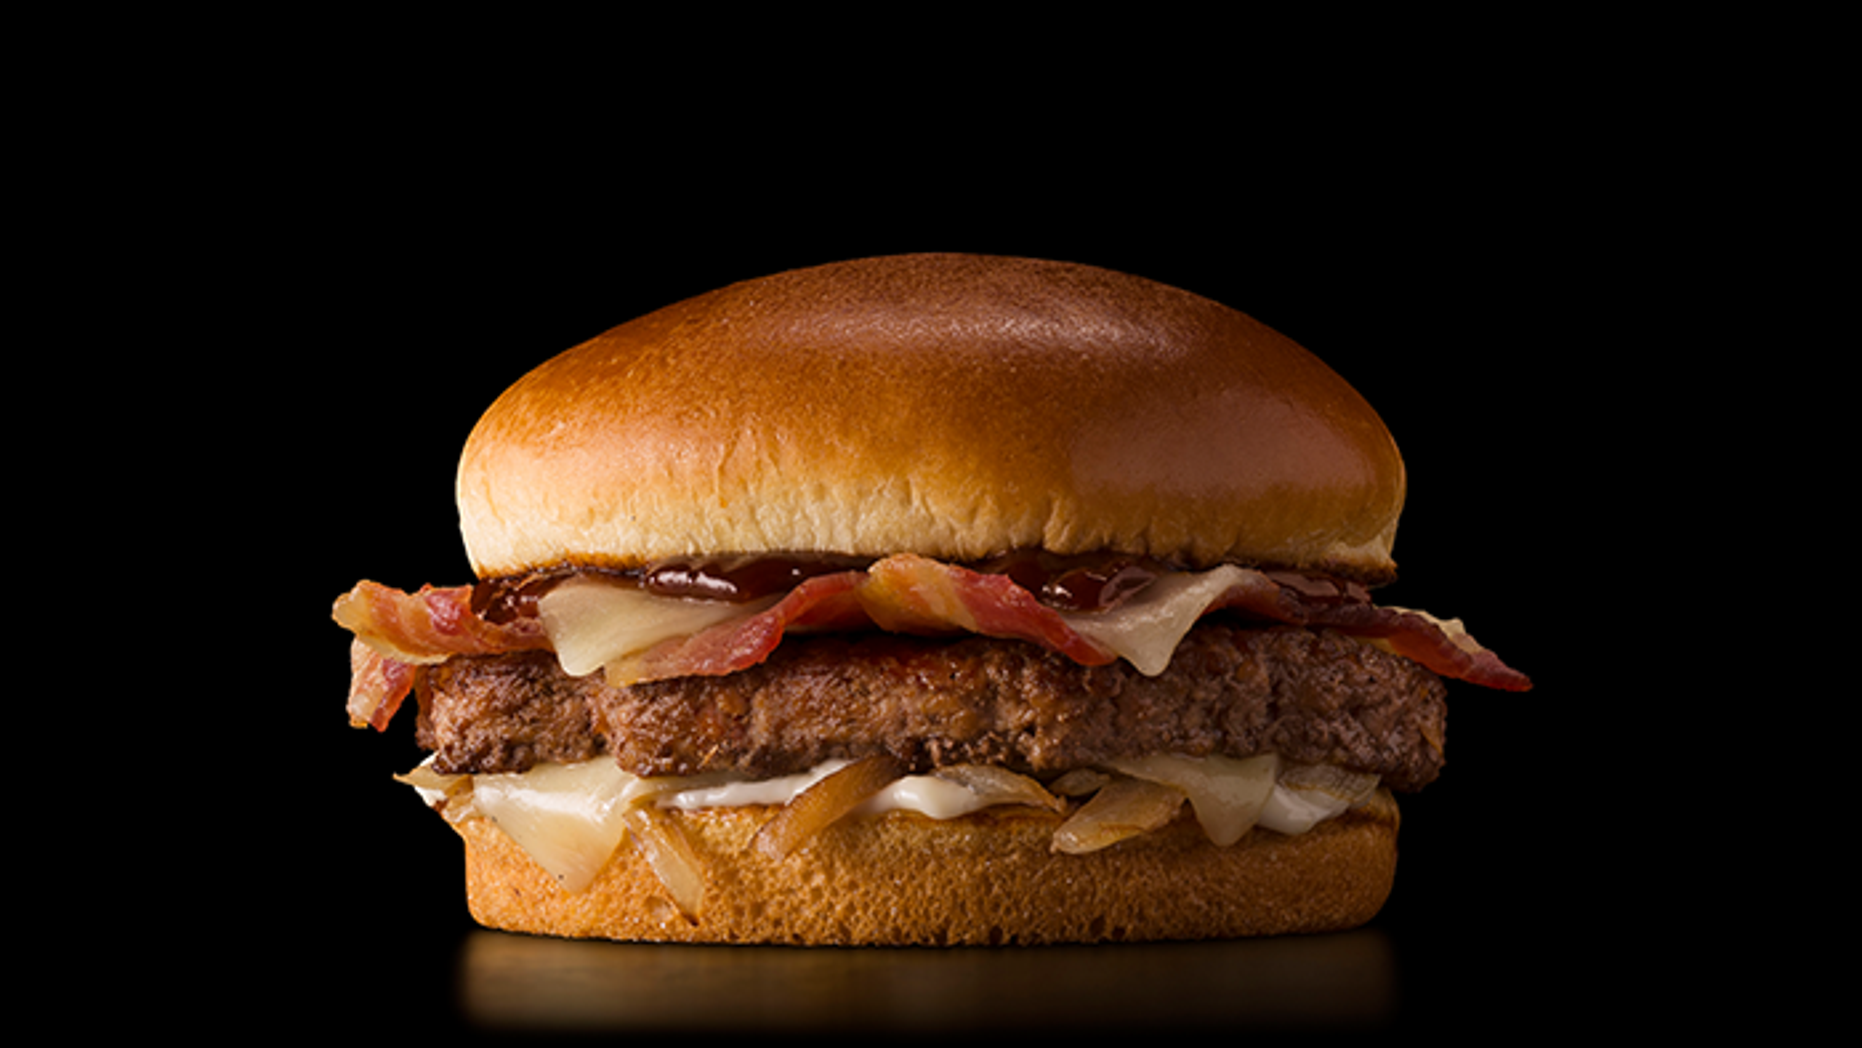 This McDonald's is expanding its international menu again with menu items from India, Australia, France, Canada, and Germany - like this Cheddar BBQ Bacon Burger.